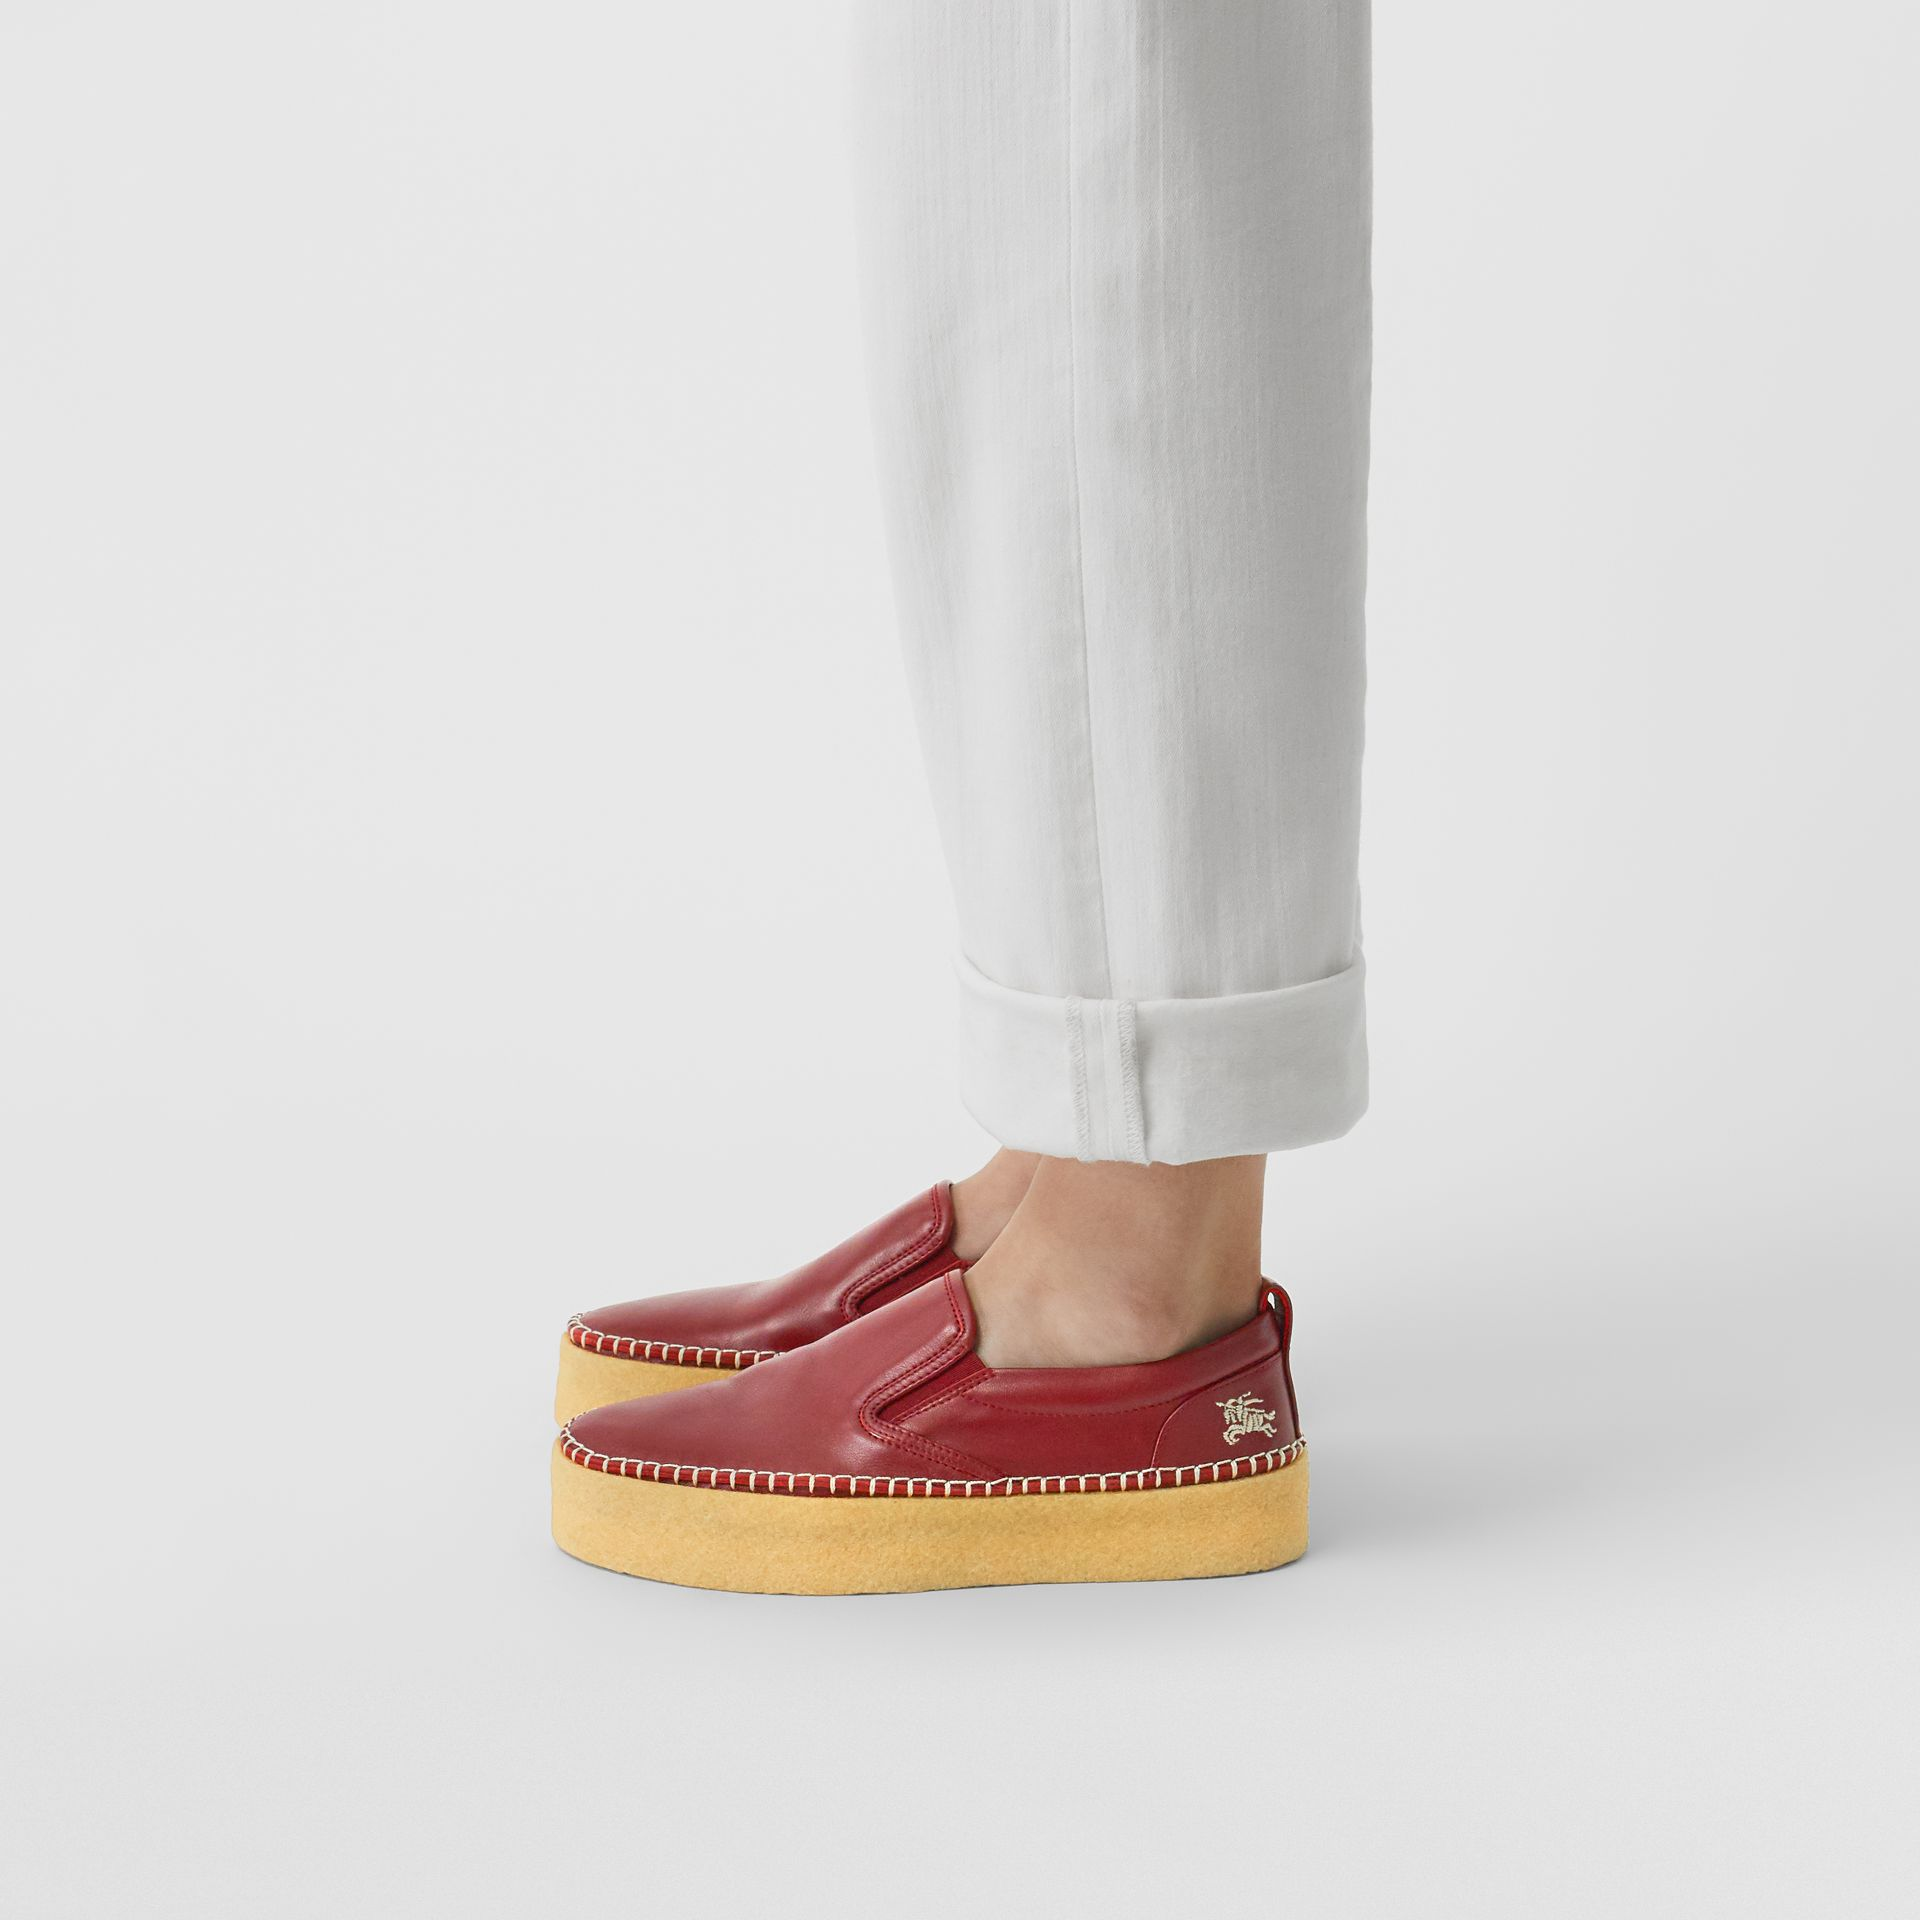 Leather Slip-on Sneakers in Bordeaux - Women | Burberry United States - gallery image 2